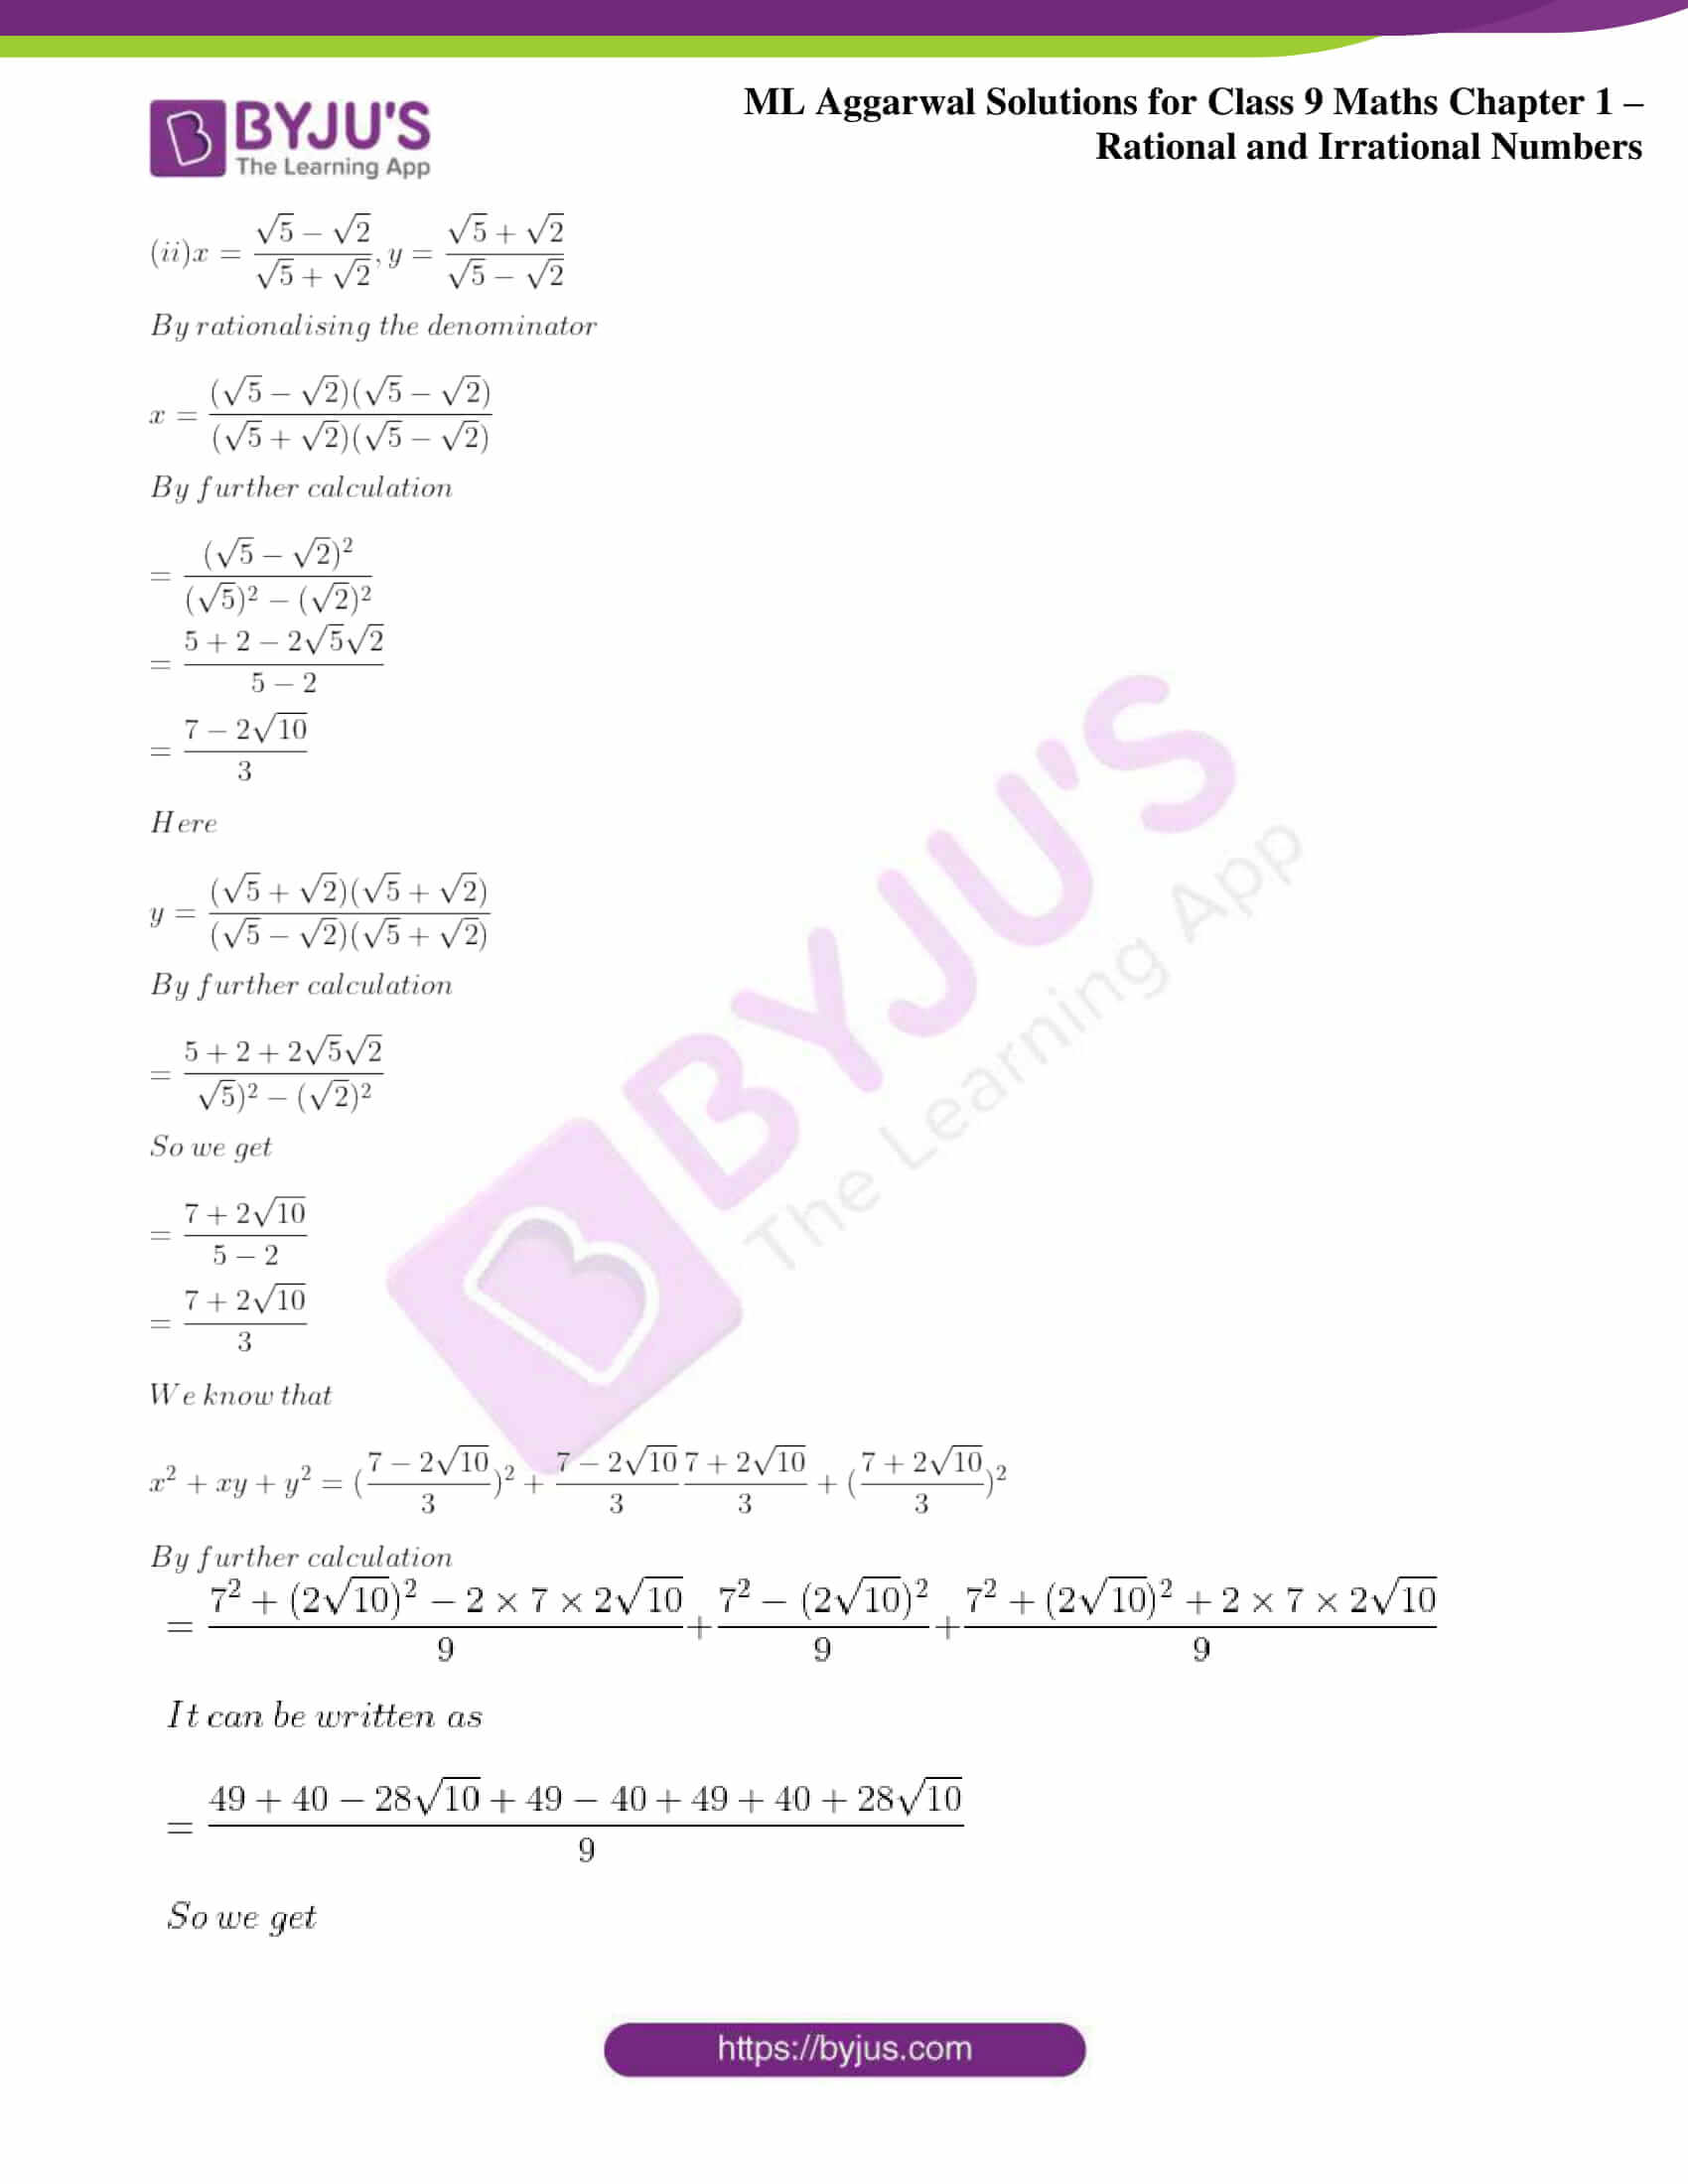 ml aggarwal solutions for class 9 maths chapter 1 76